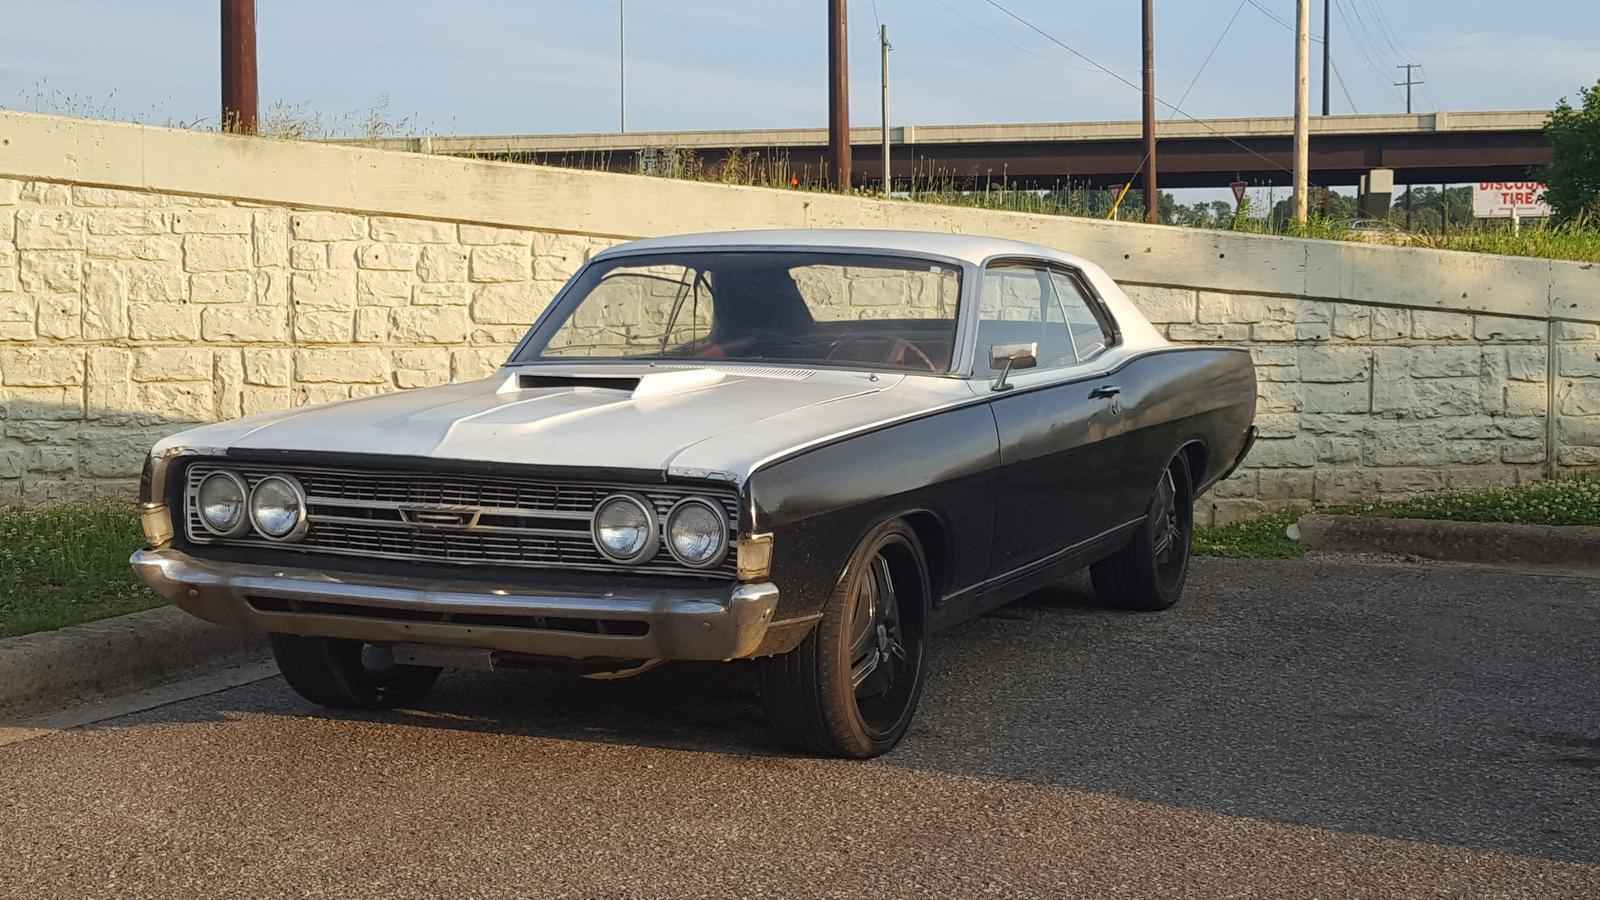 Used 1968 Ford TORINO ATVs For Sale in Tennessee on atvtrades com